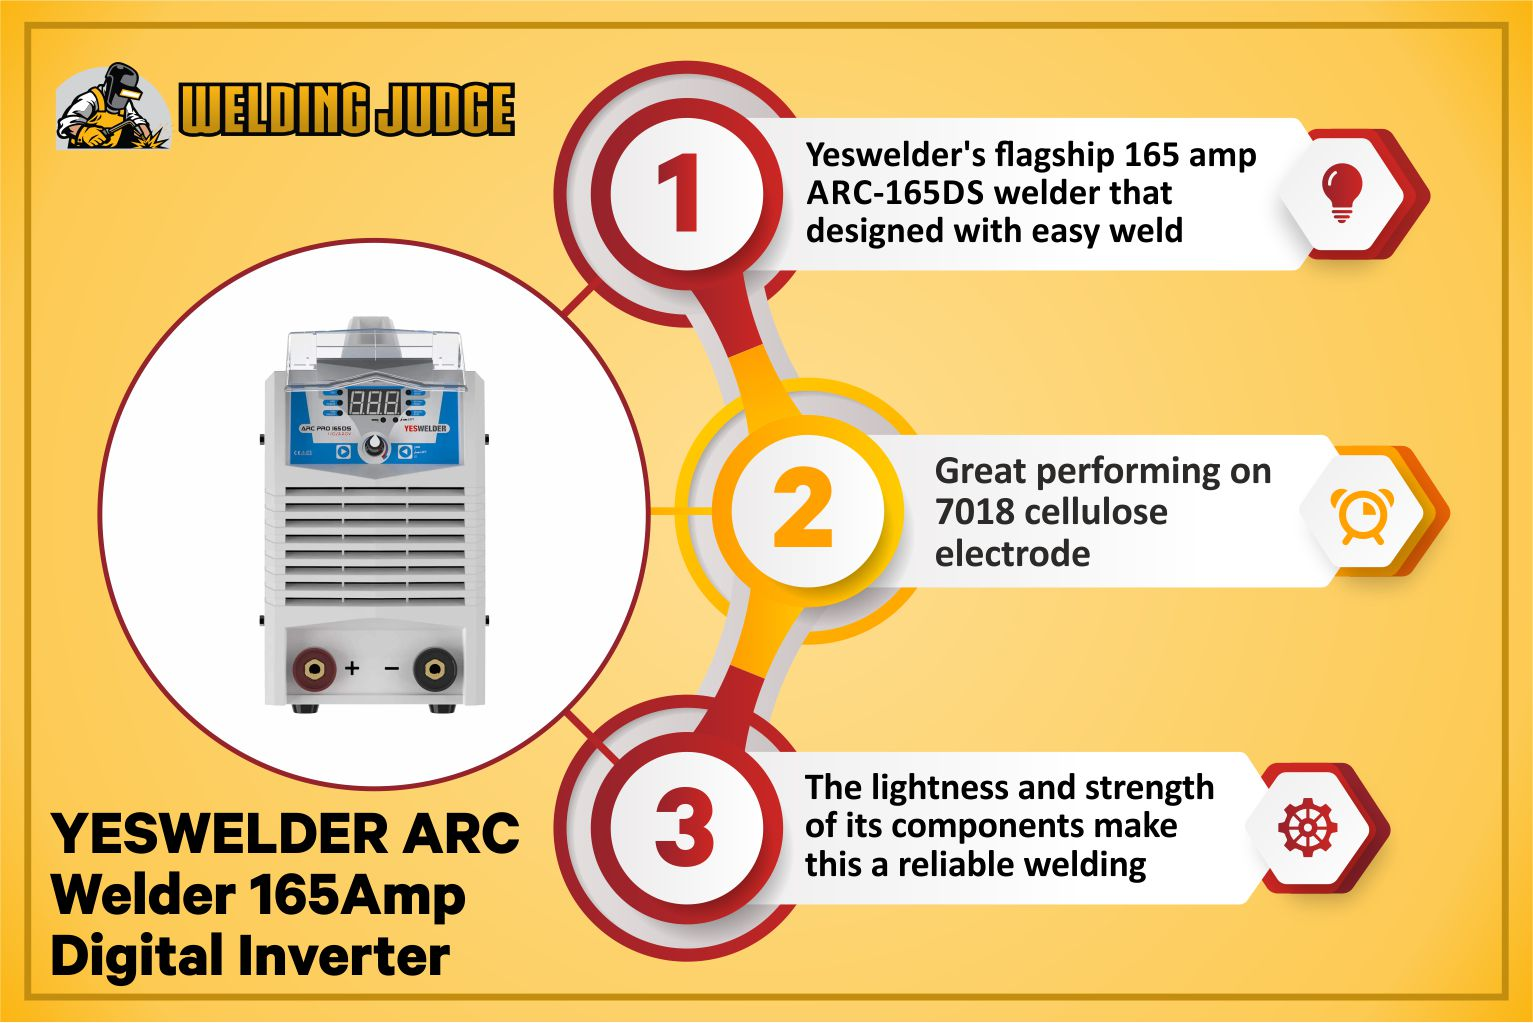 YESWELDER TIG-205DS 200 - Best TIG Welder under $300 infographic detail